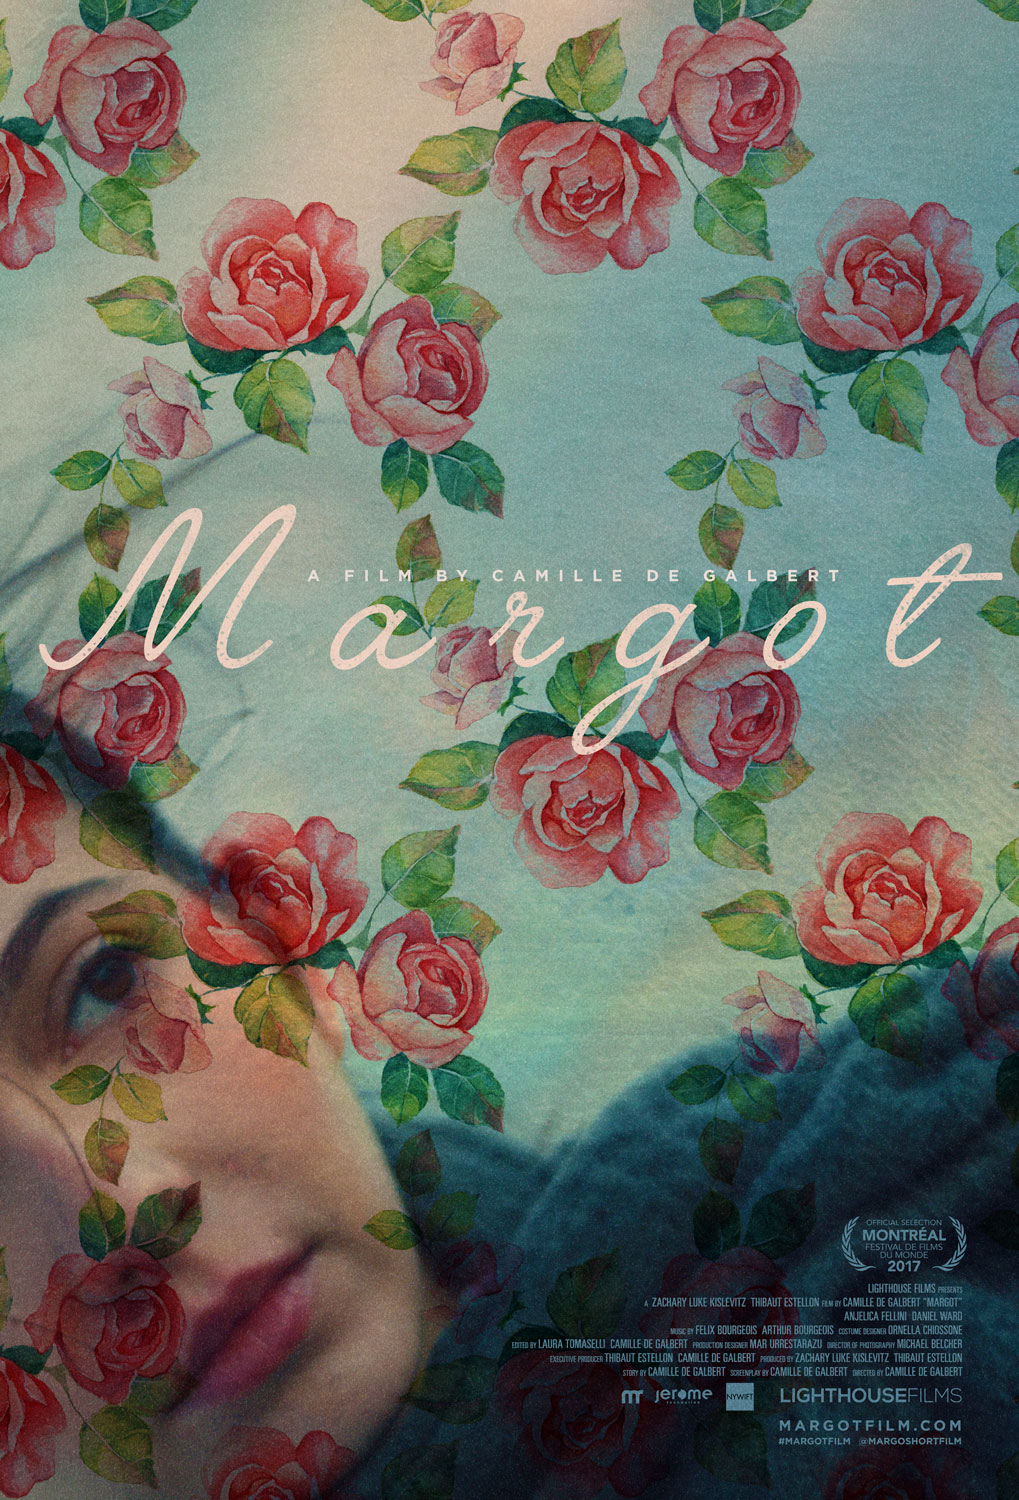 MARGOT_POSTER_ONE_SHEET_RGB_170816_03.jpg